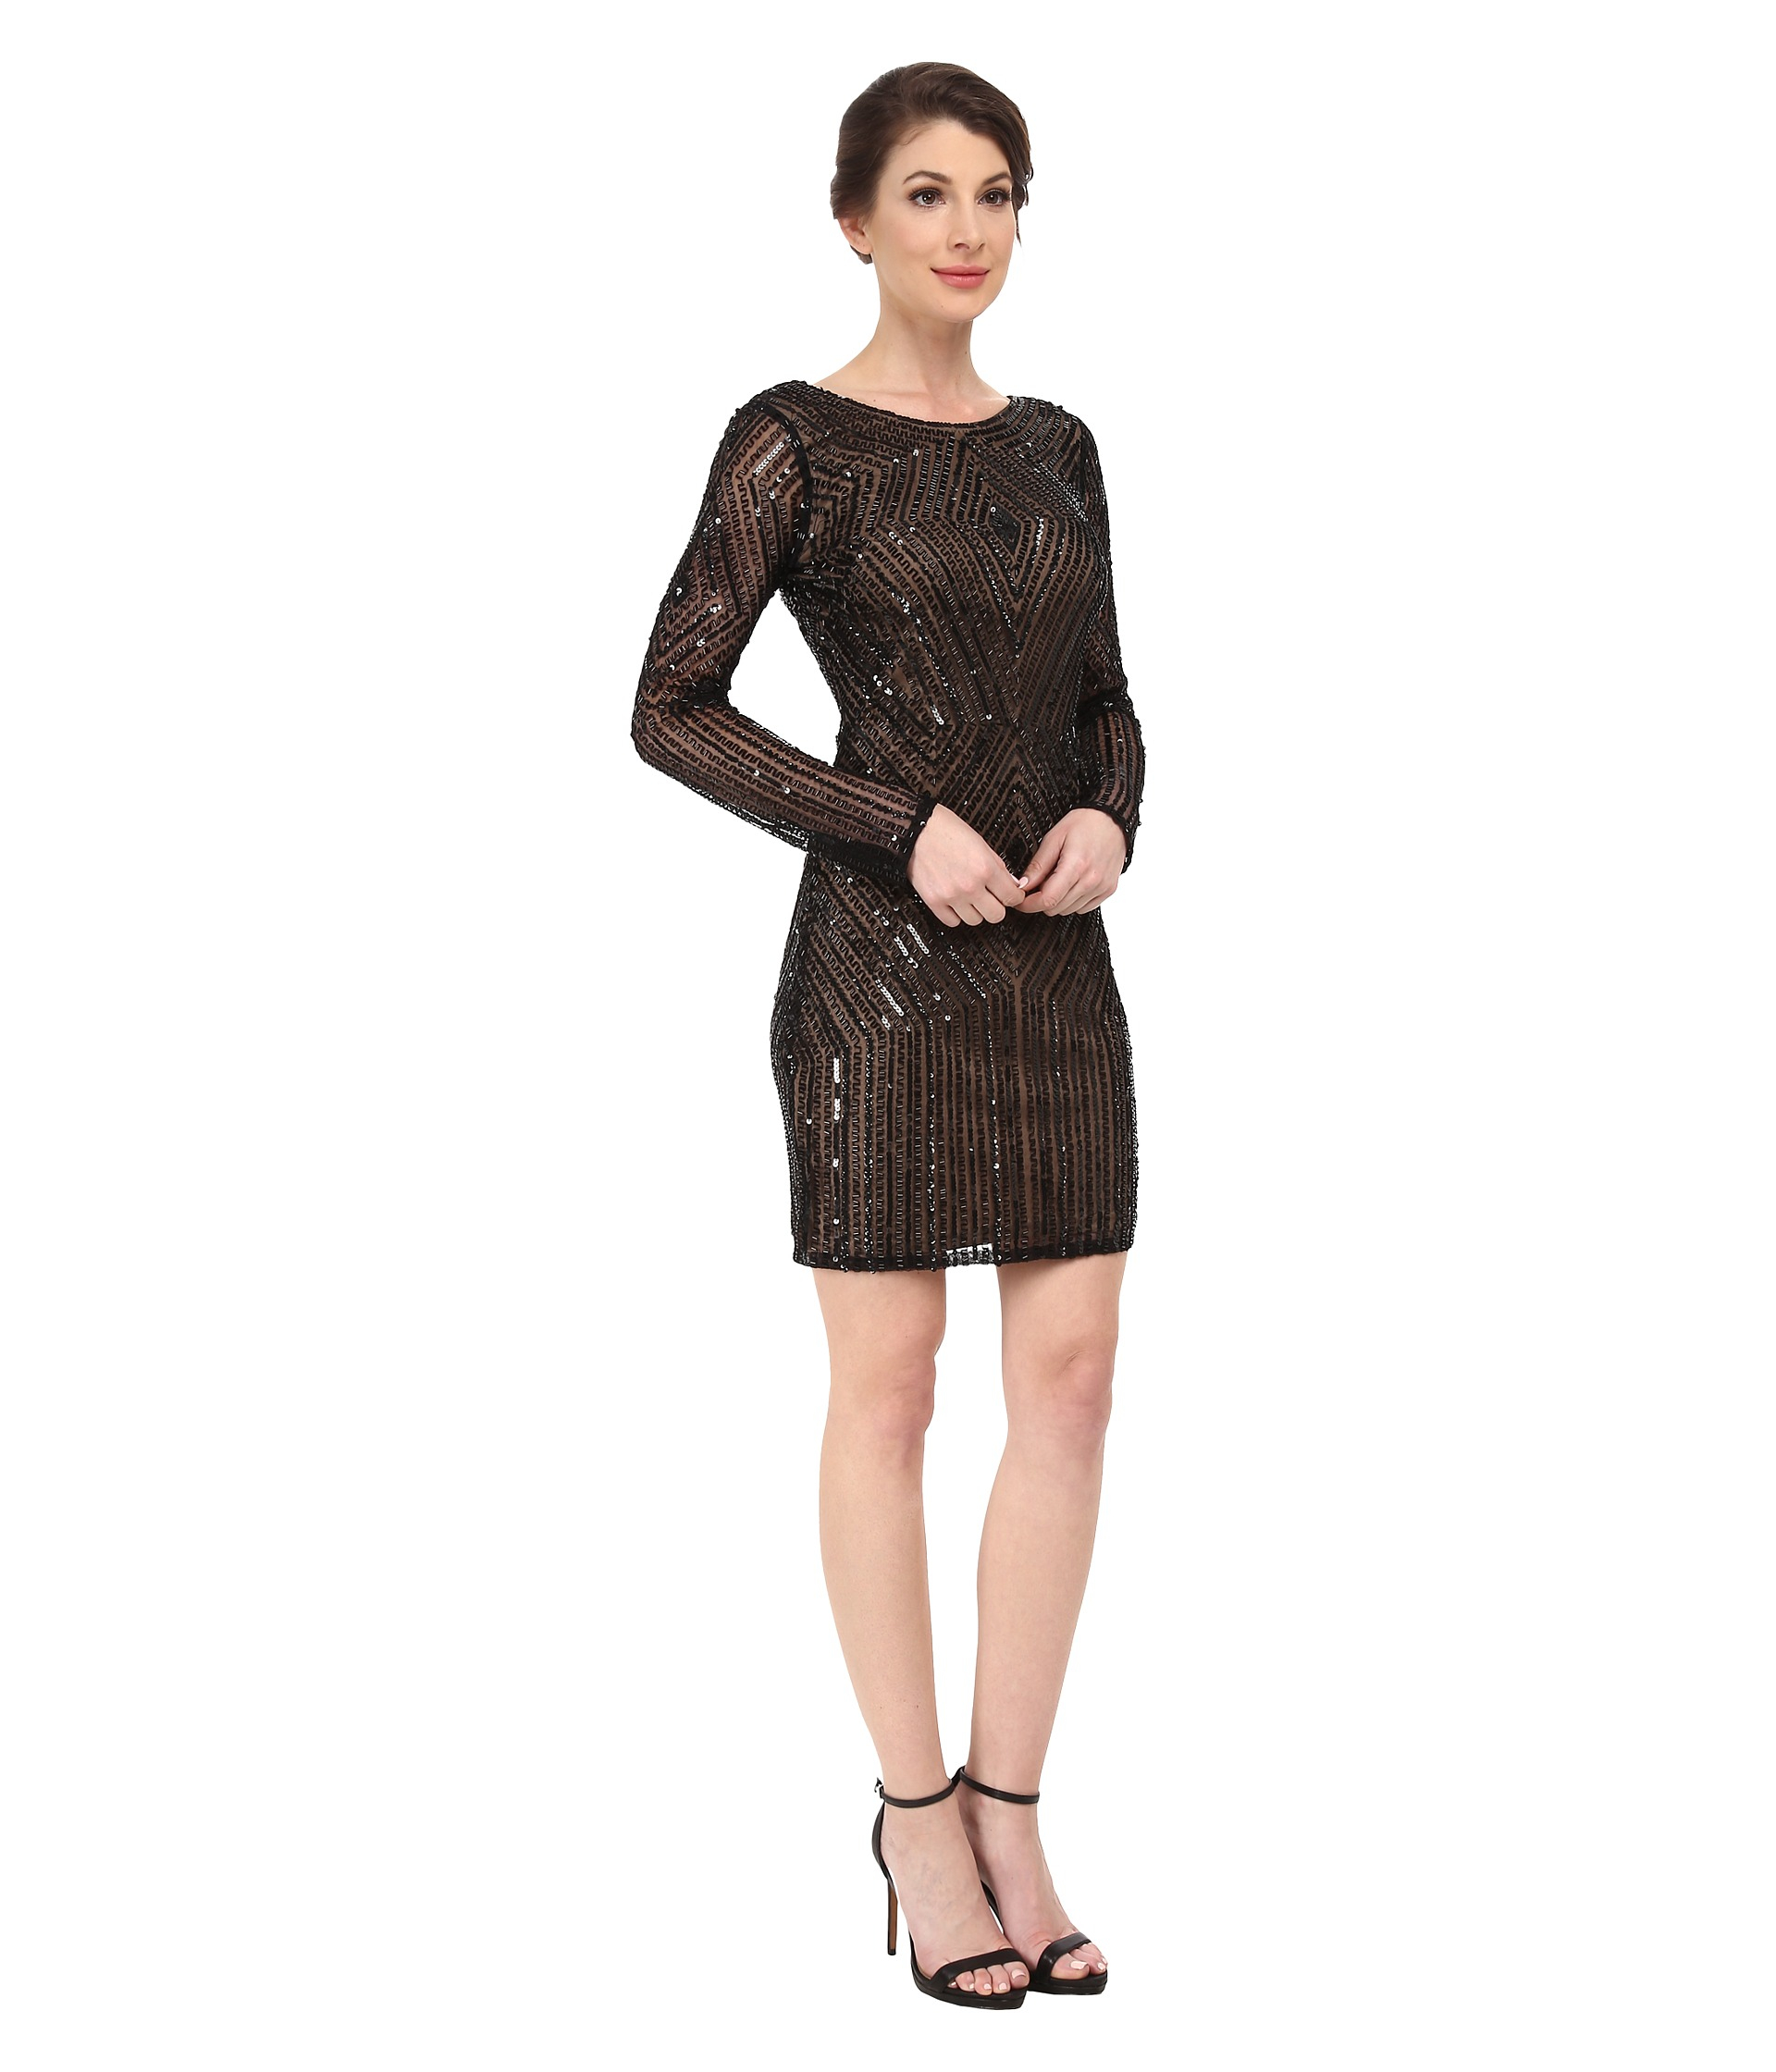 b2e155d2a1 Adrianna Papell Diamond Pattern Long Sleeve Beaded Cocktail Dress in ...